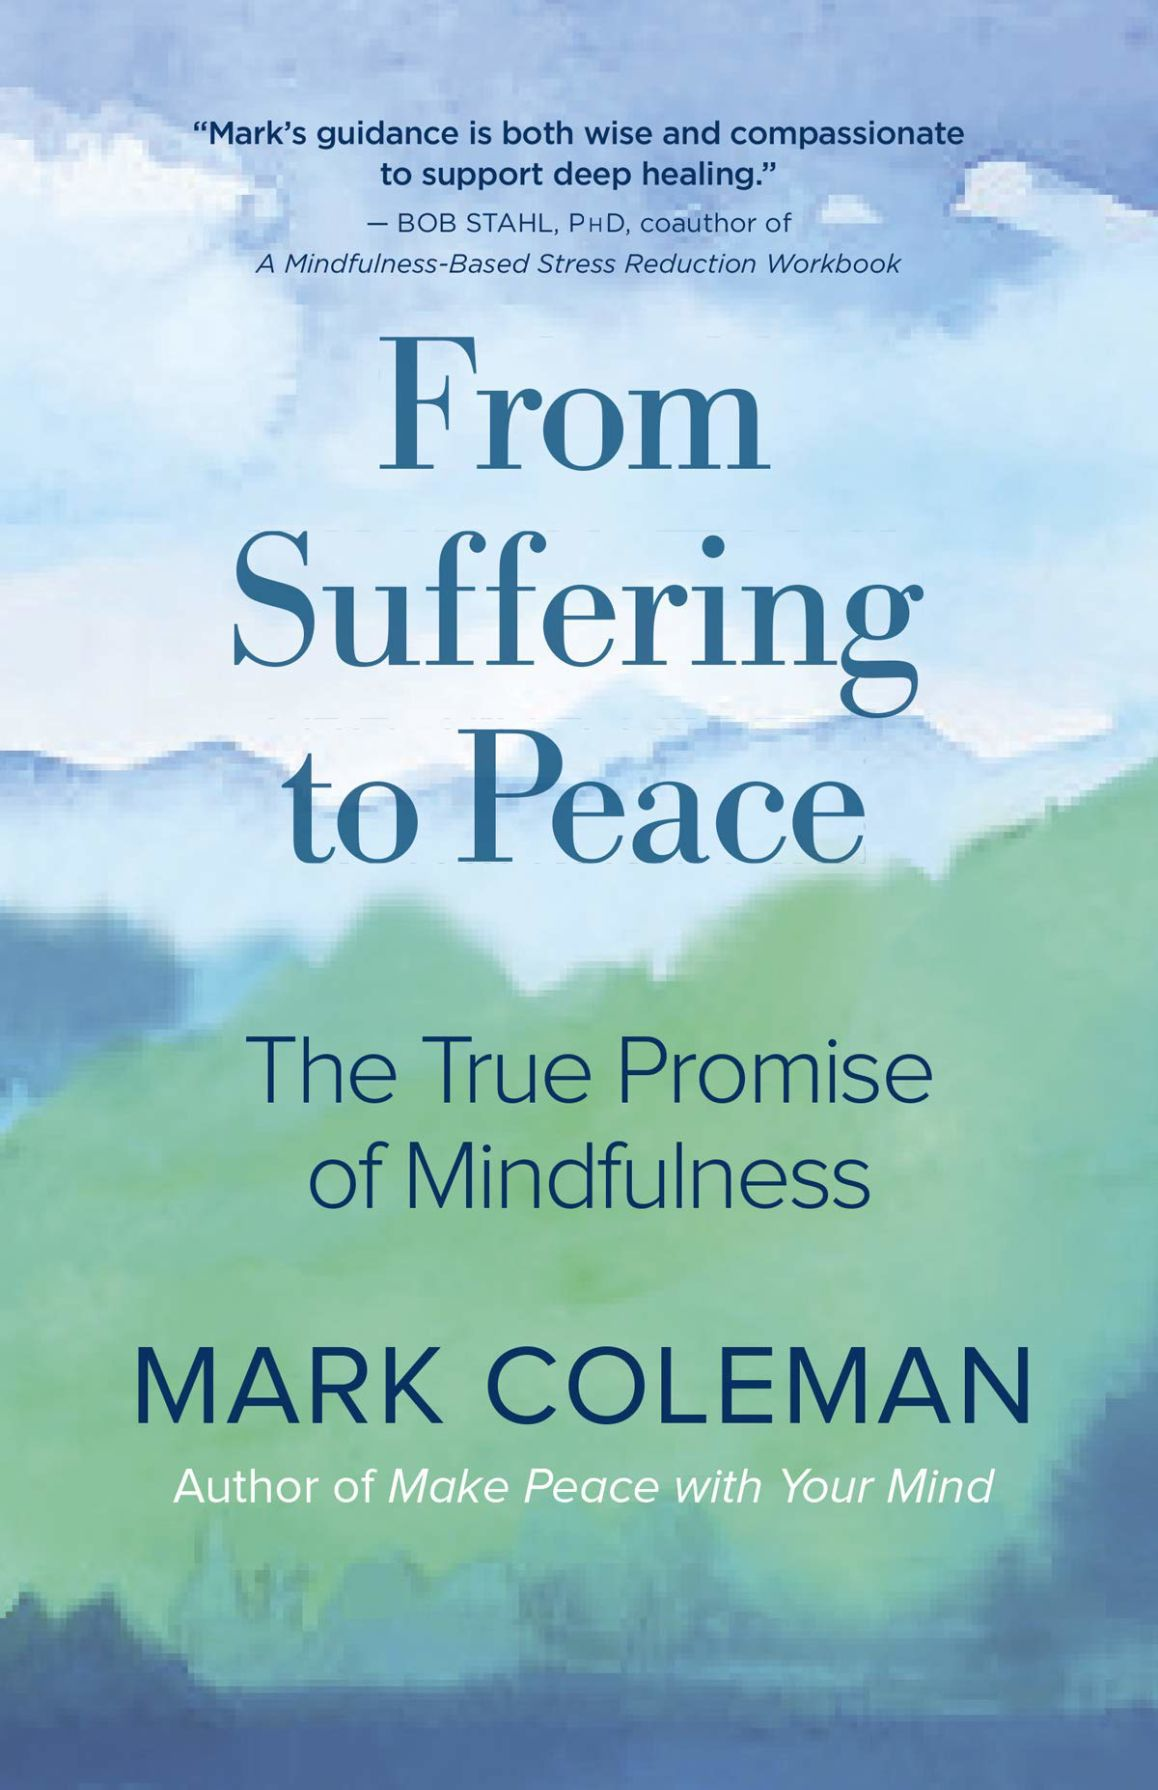 From Suffering to Peace book cover